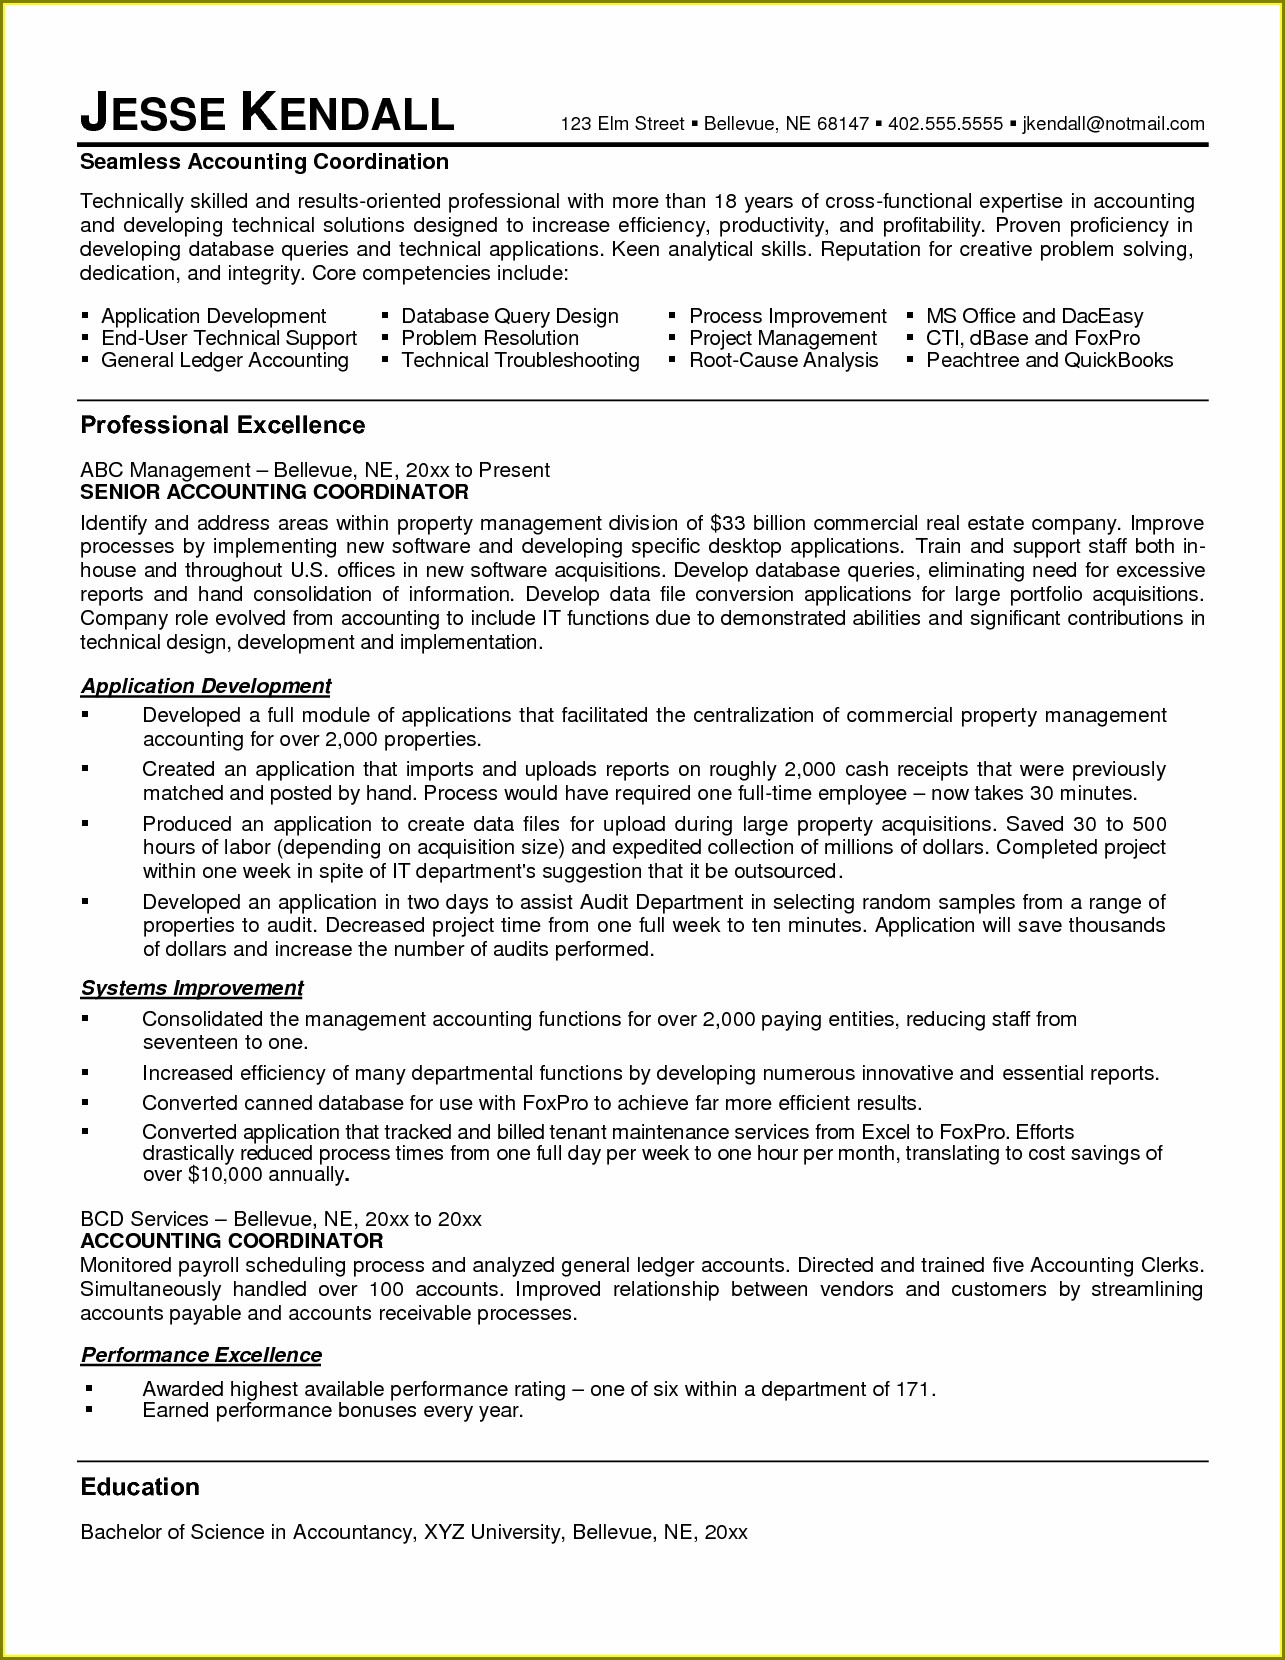 Resume Samples For Accountant Assistant